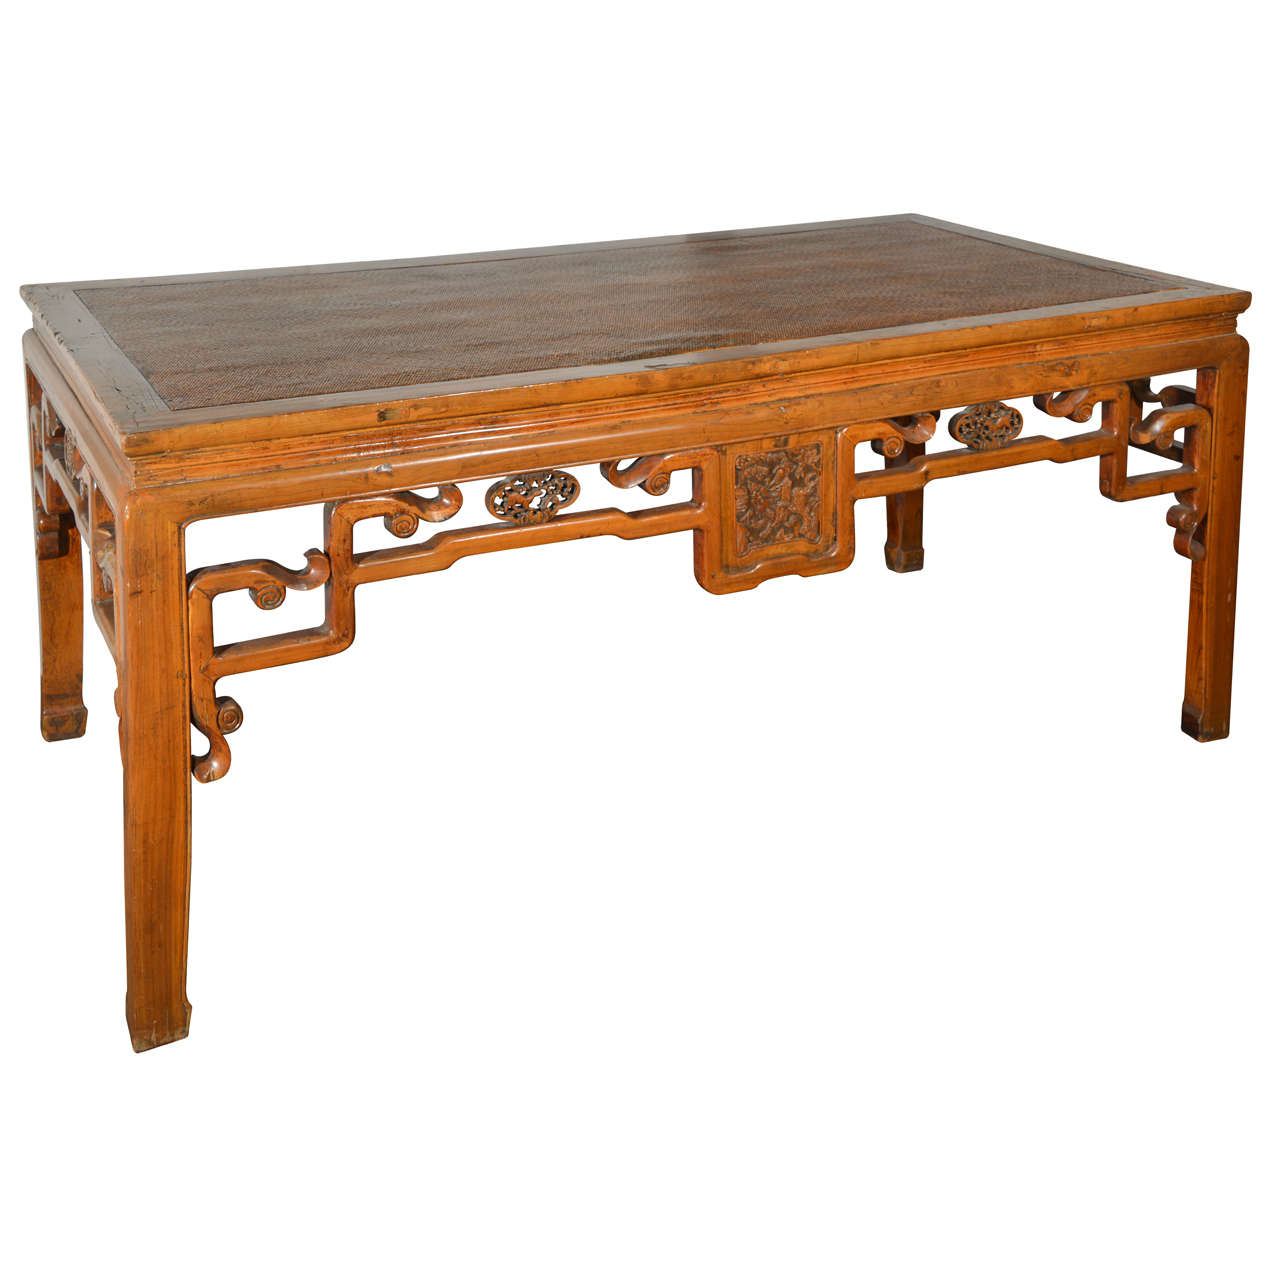 Chinese Carved Table, Qing Dynasty